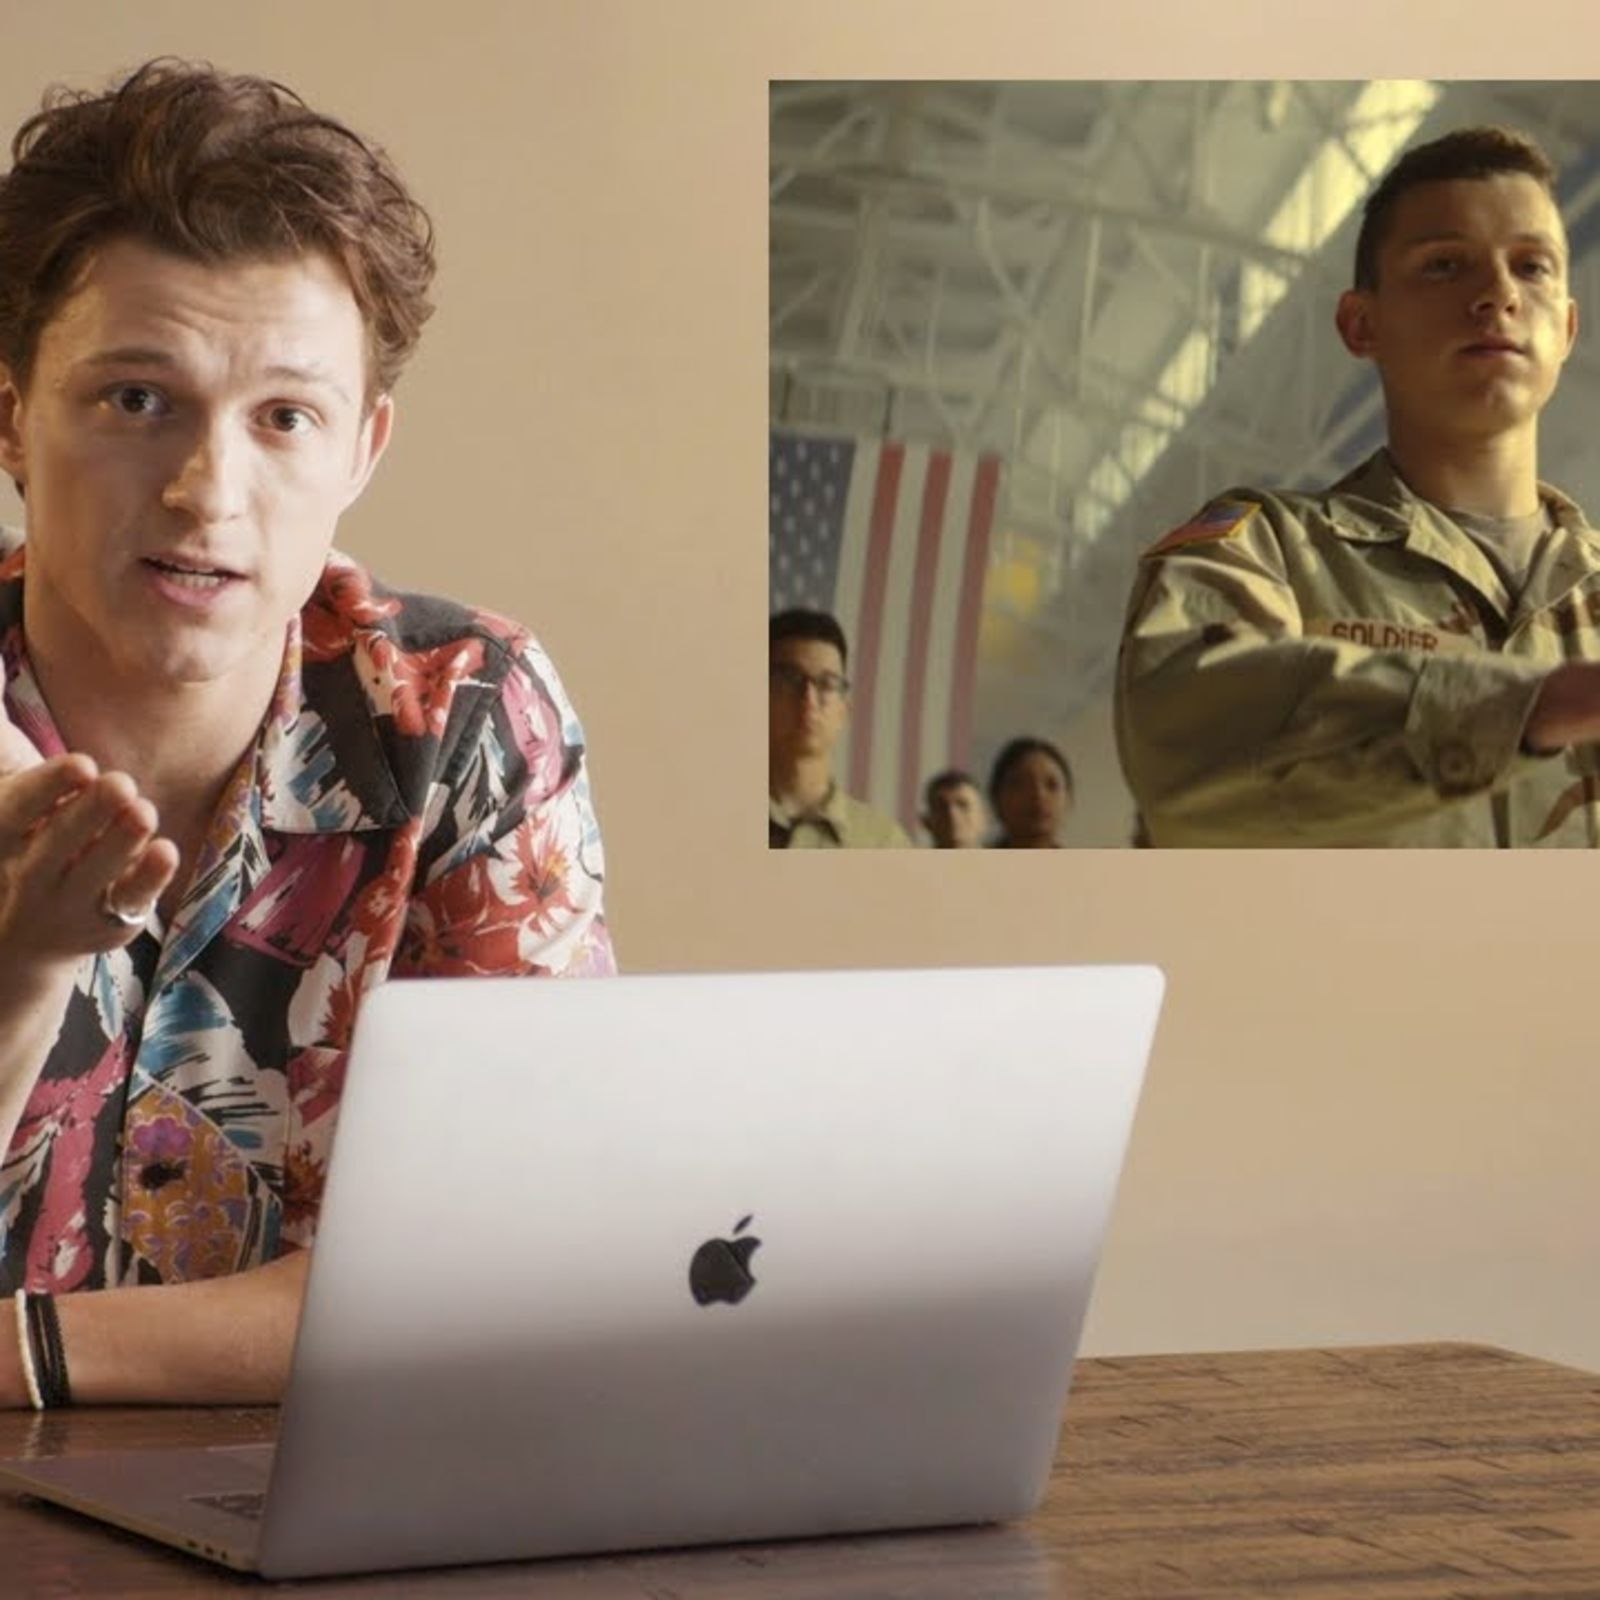 Tom Holland reacts to Cherry: 'I dislocated my ankle during filming'